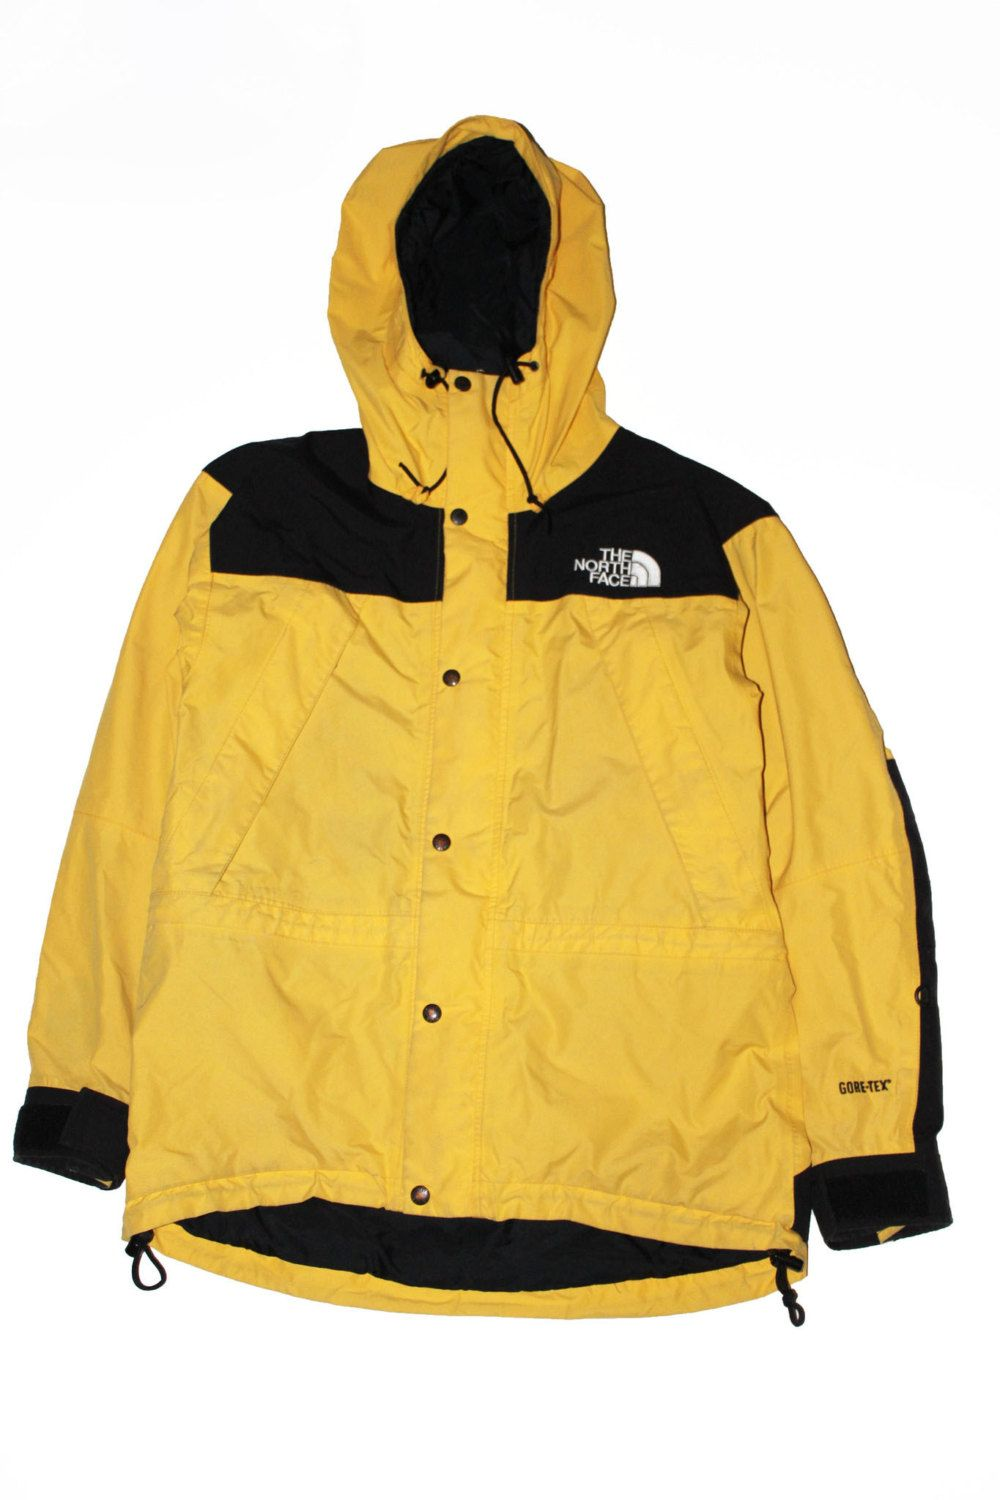 d22b7c3369 Vintage 90s Women s The North Face Mountain Guide Gore-Tex jacket  Yellow Black Size M by VapeoVintage on Etsy